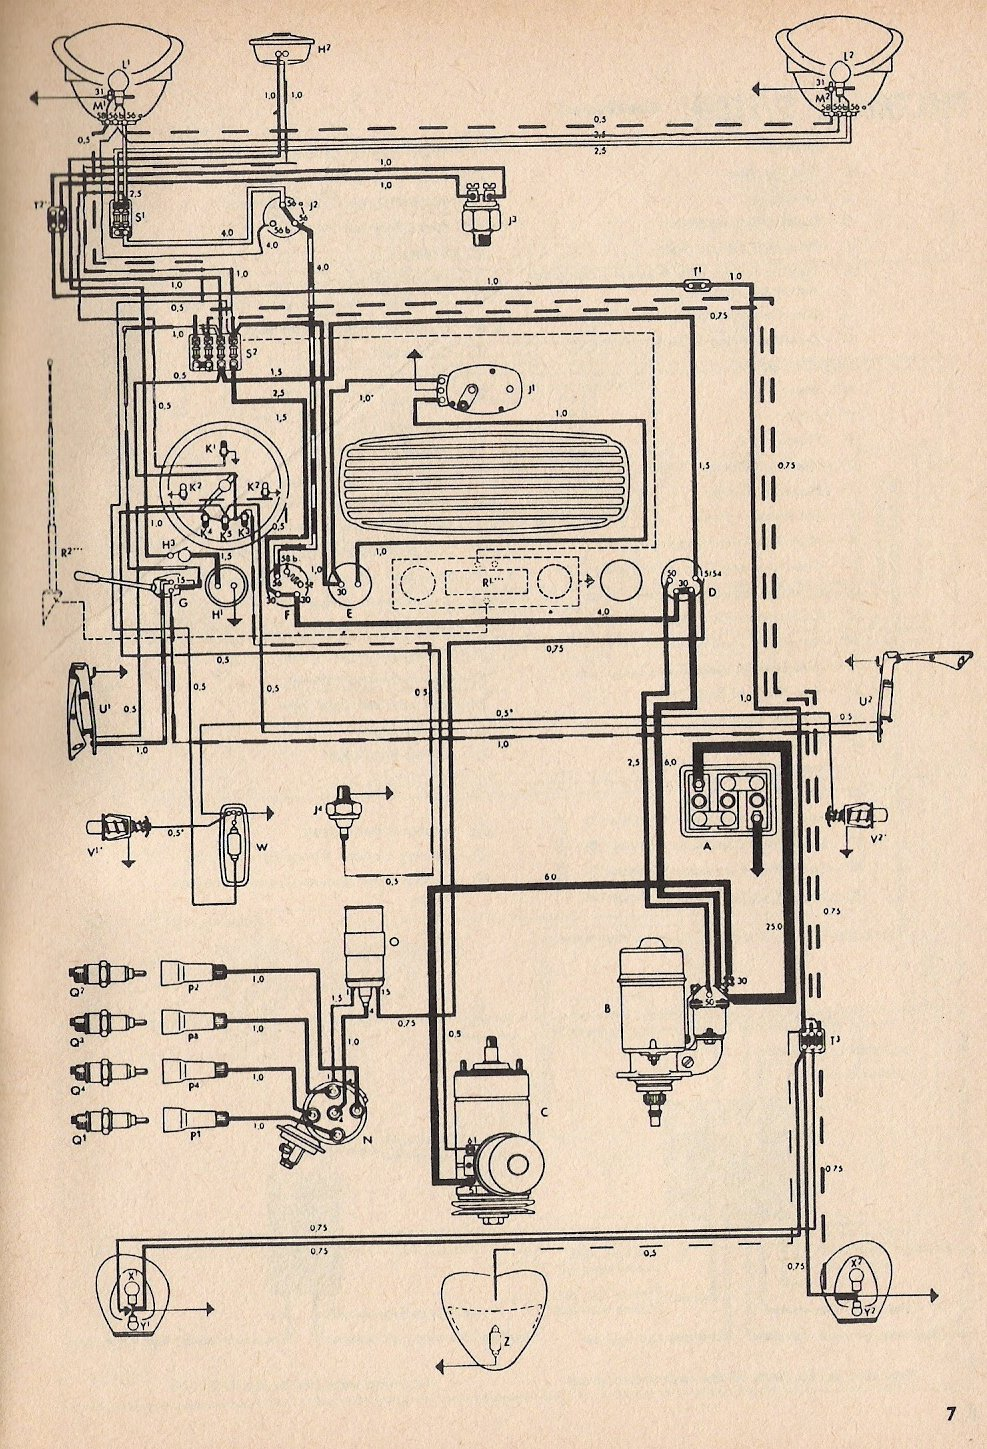 bug_54 1954 beetle wiring diagram thegoldenbug com beetle wiring diagram to fix a/c fan at n-0.co